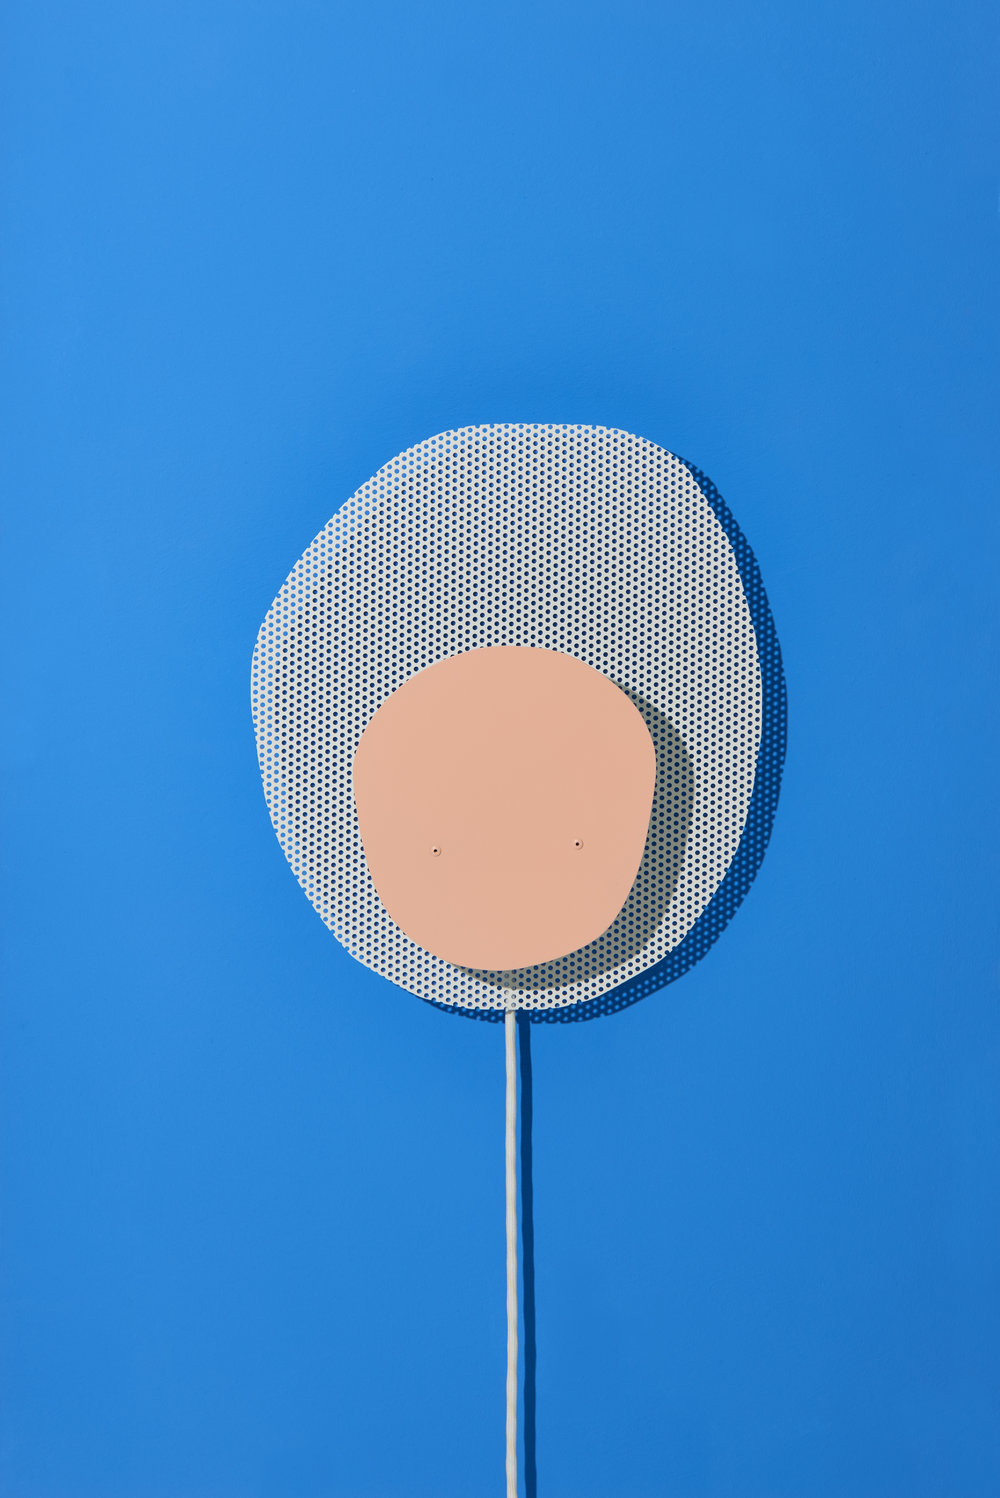 Poppy_Wall_Lamp_Frederik_Kurzweg_Design_Studio_01.jpg